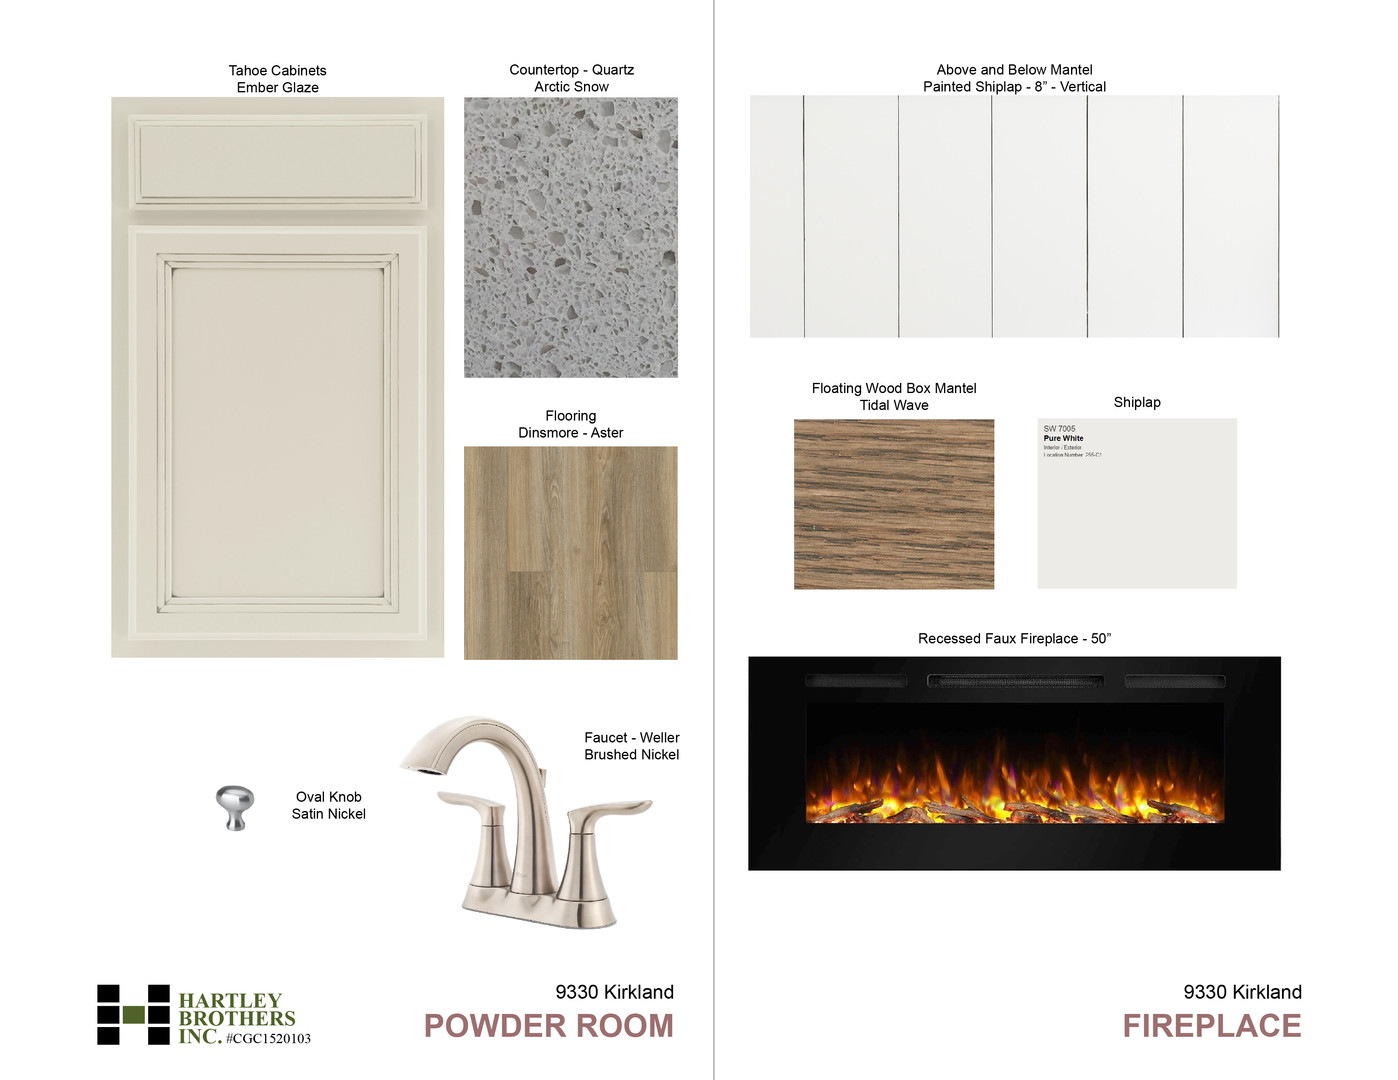 9330 Powder Room and Fireplace